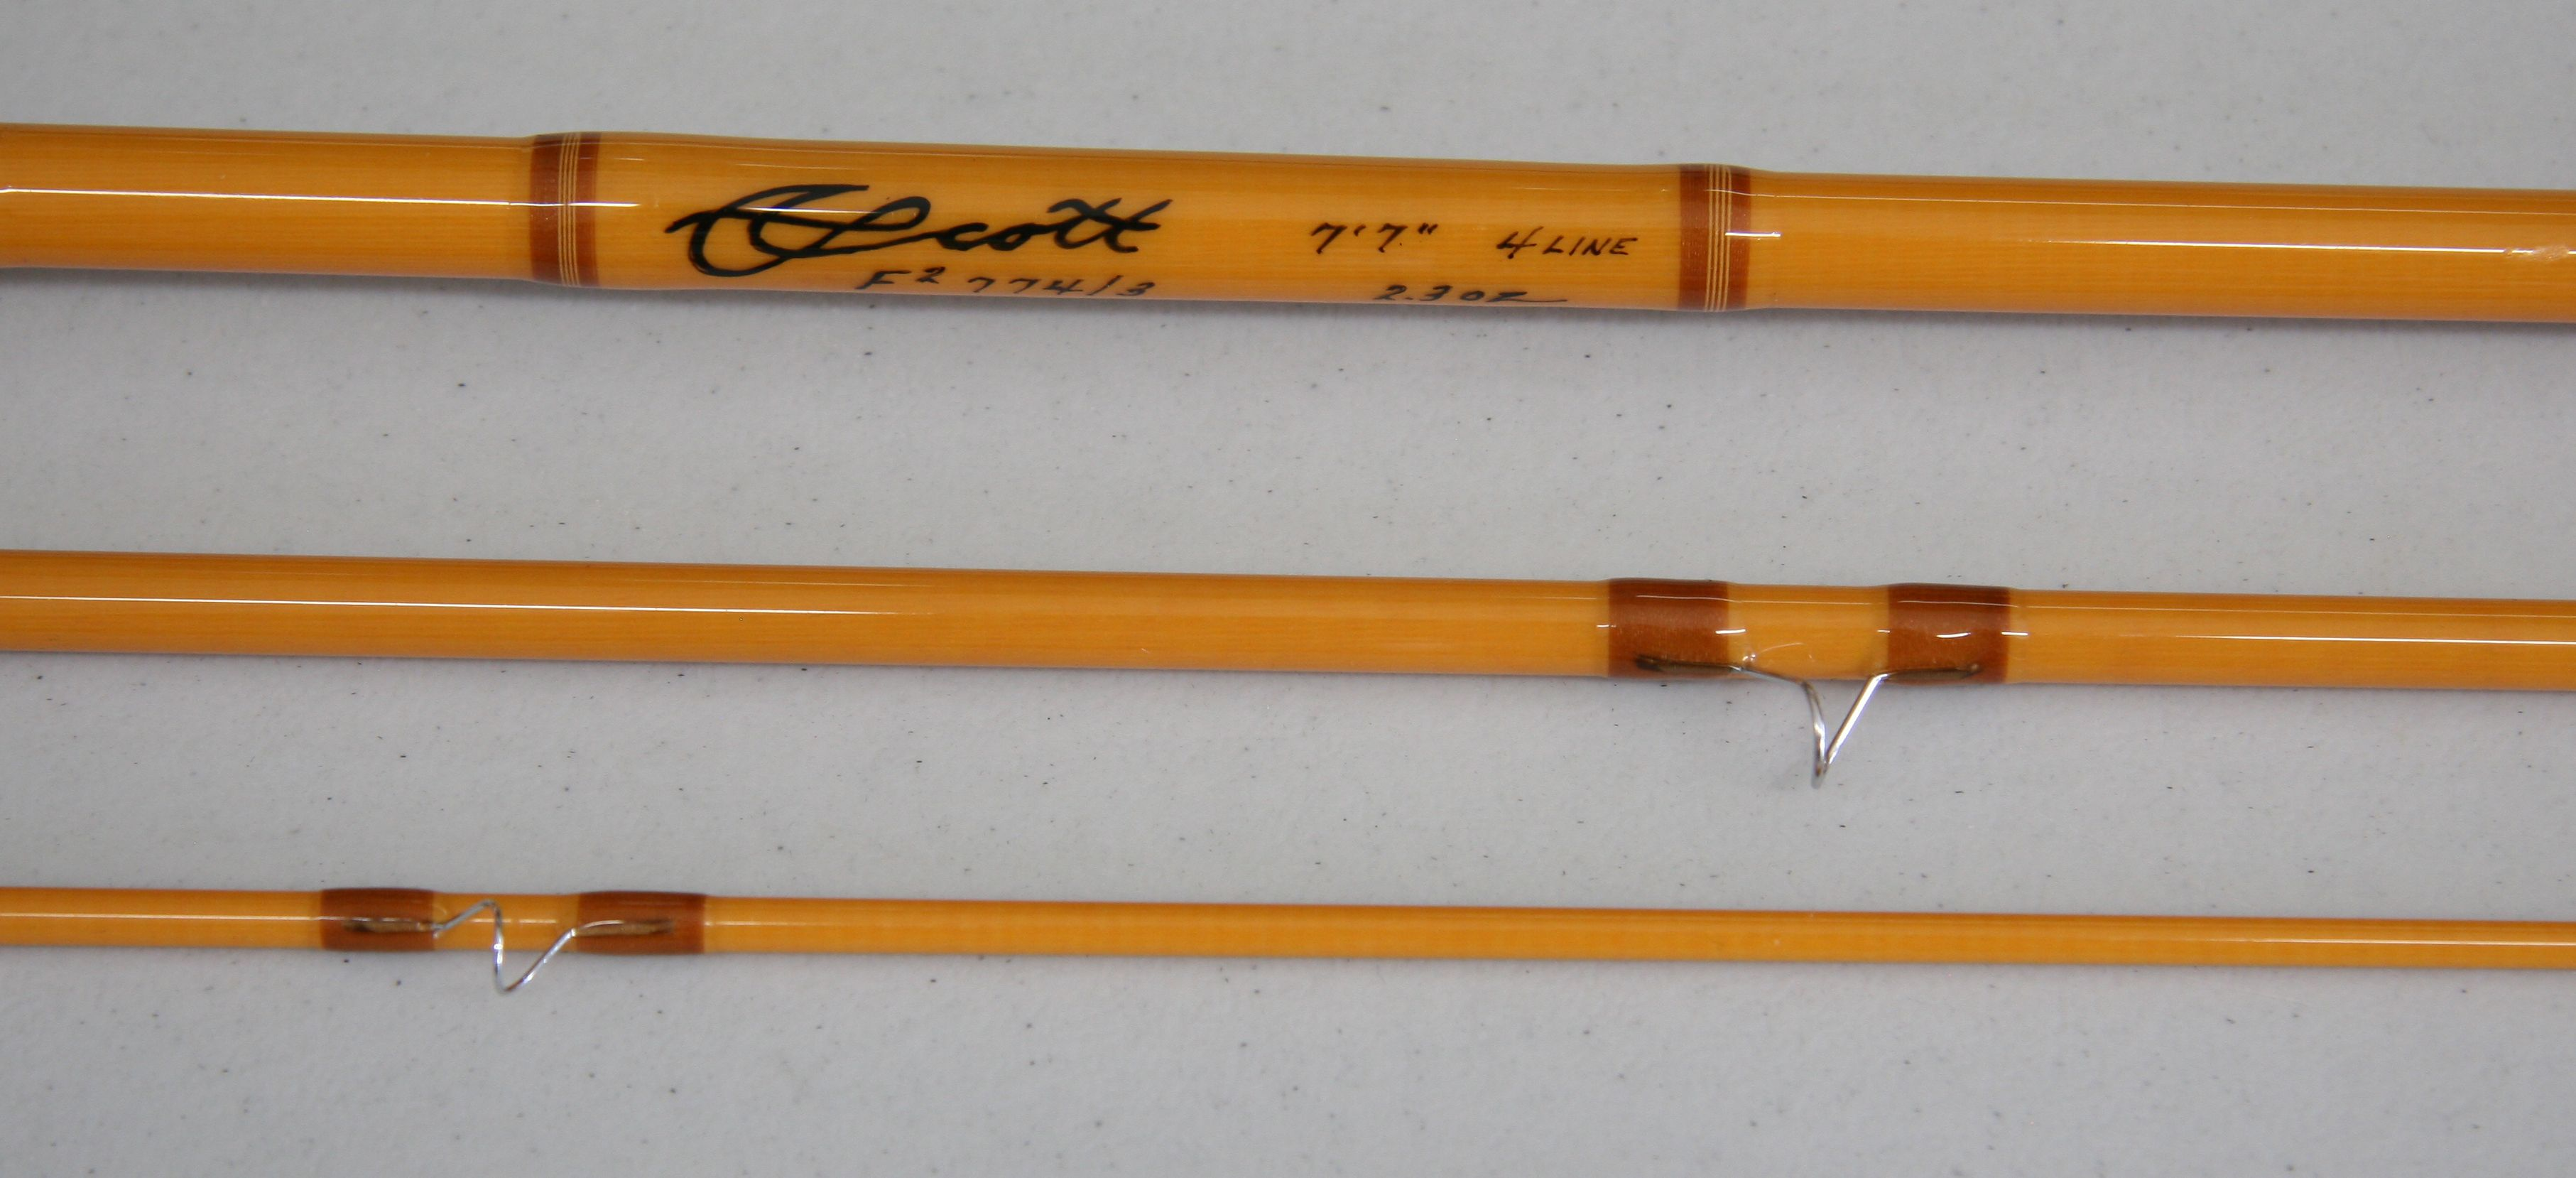 Rick 39 s rods vintage fly fishing rods and reels denver for Vintage fishing rods